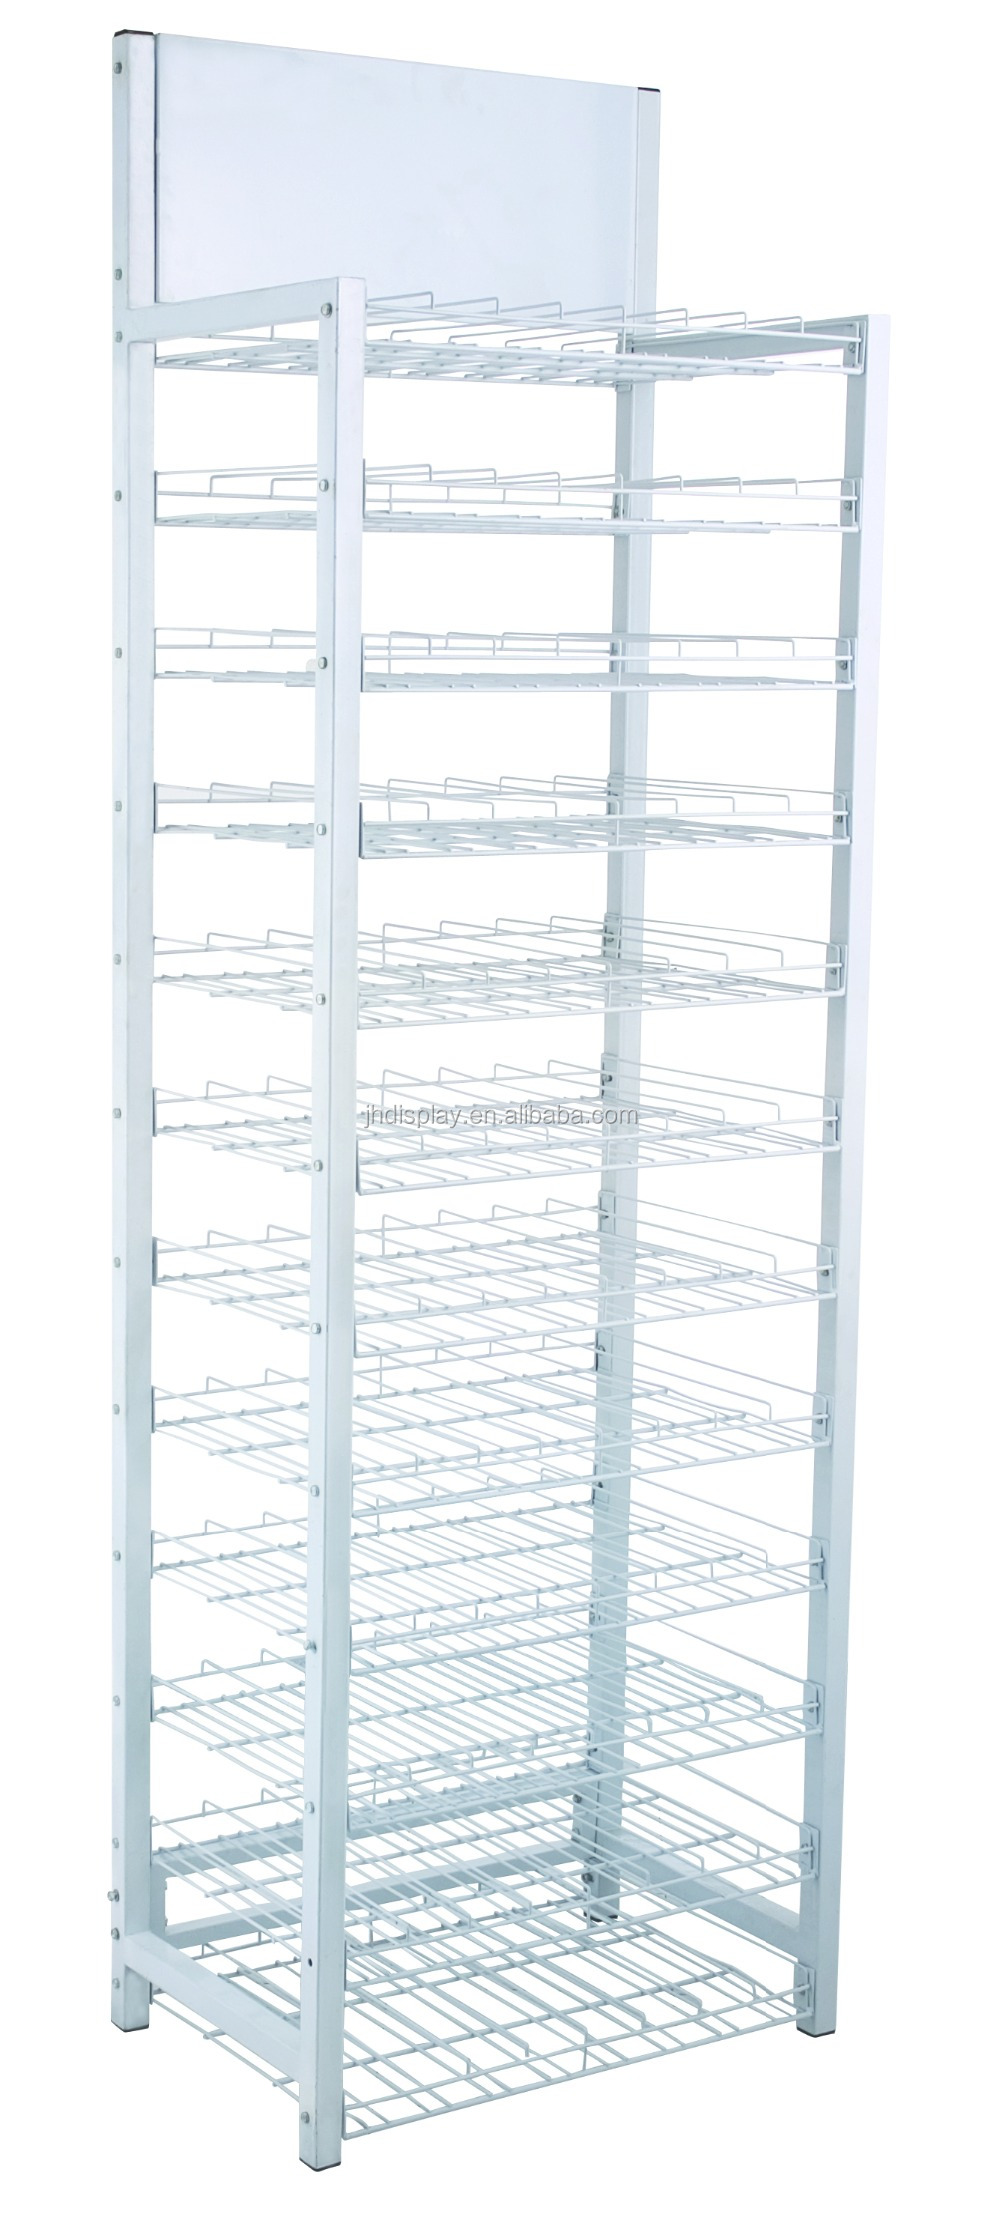 Photo Wire Display hot sale! supermartk metal wire rack / food pop iron wire display